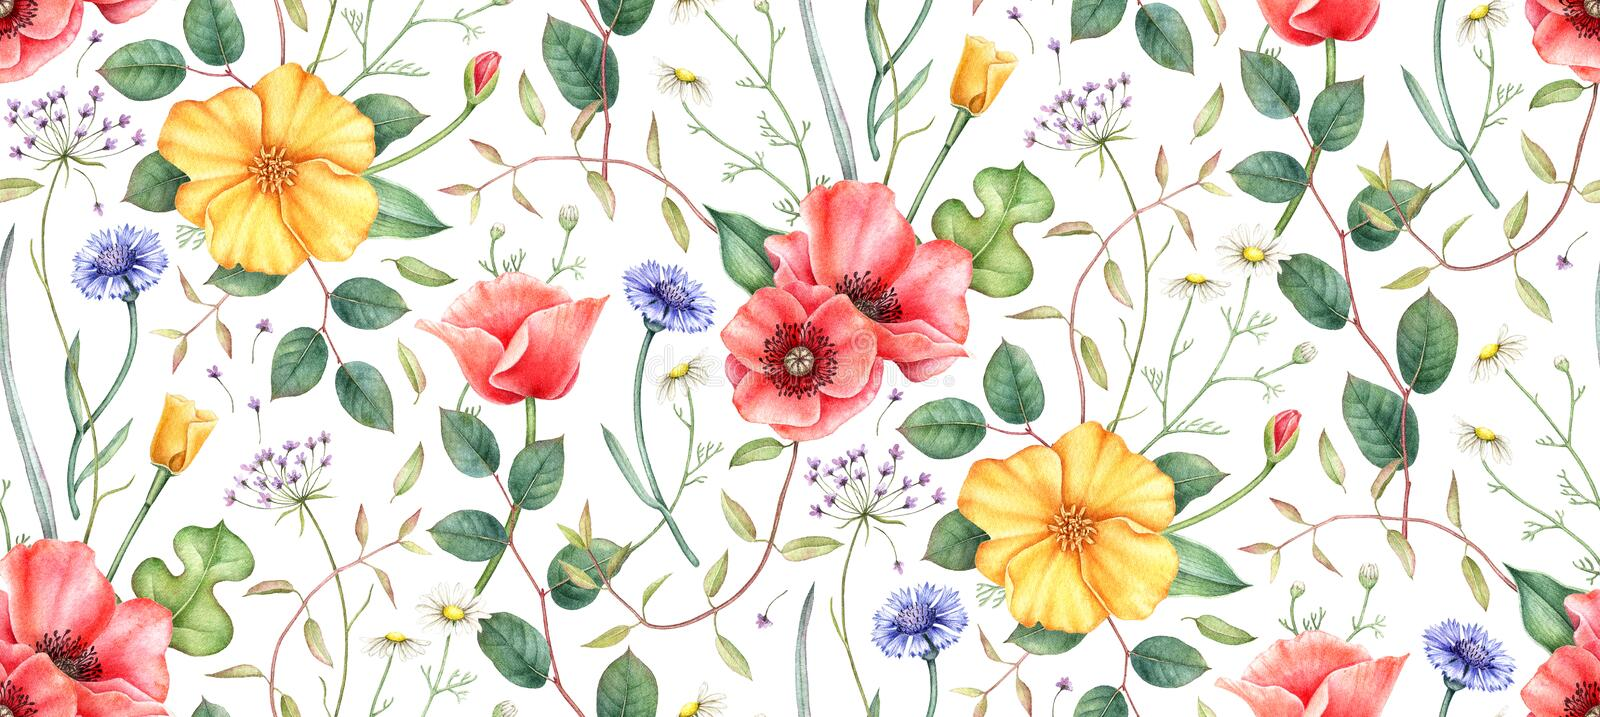 Seamless pattern with wildflowers and herbs. Hand drawn watercolor illustration. royalty free illustration